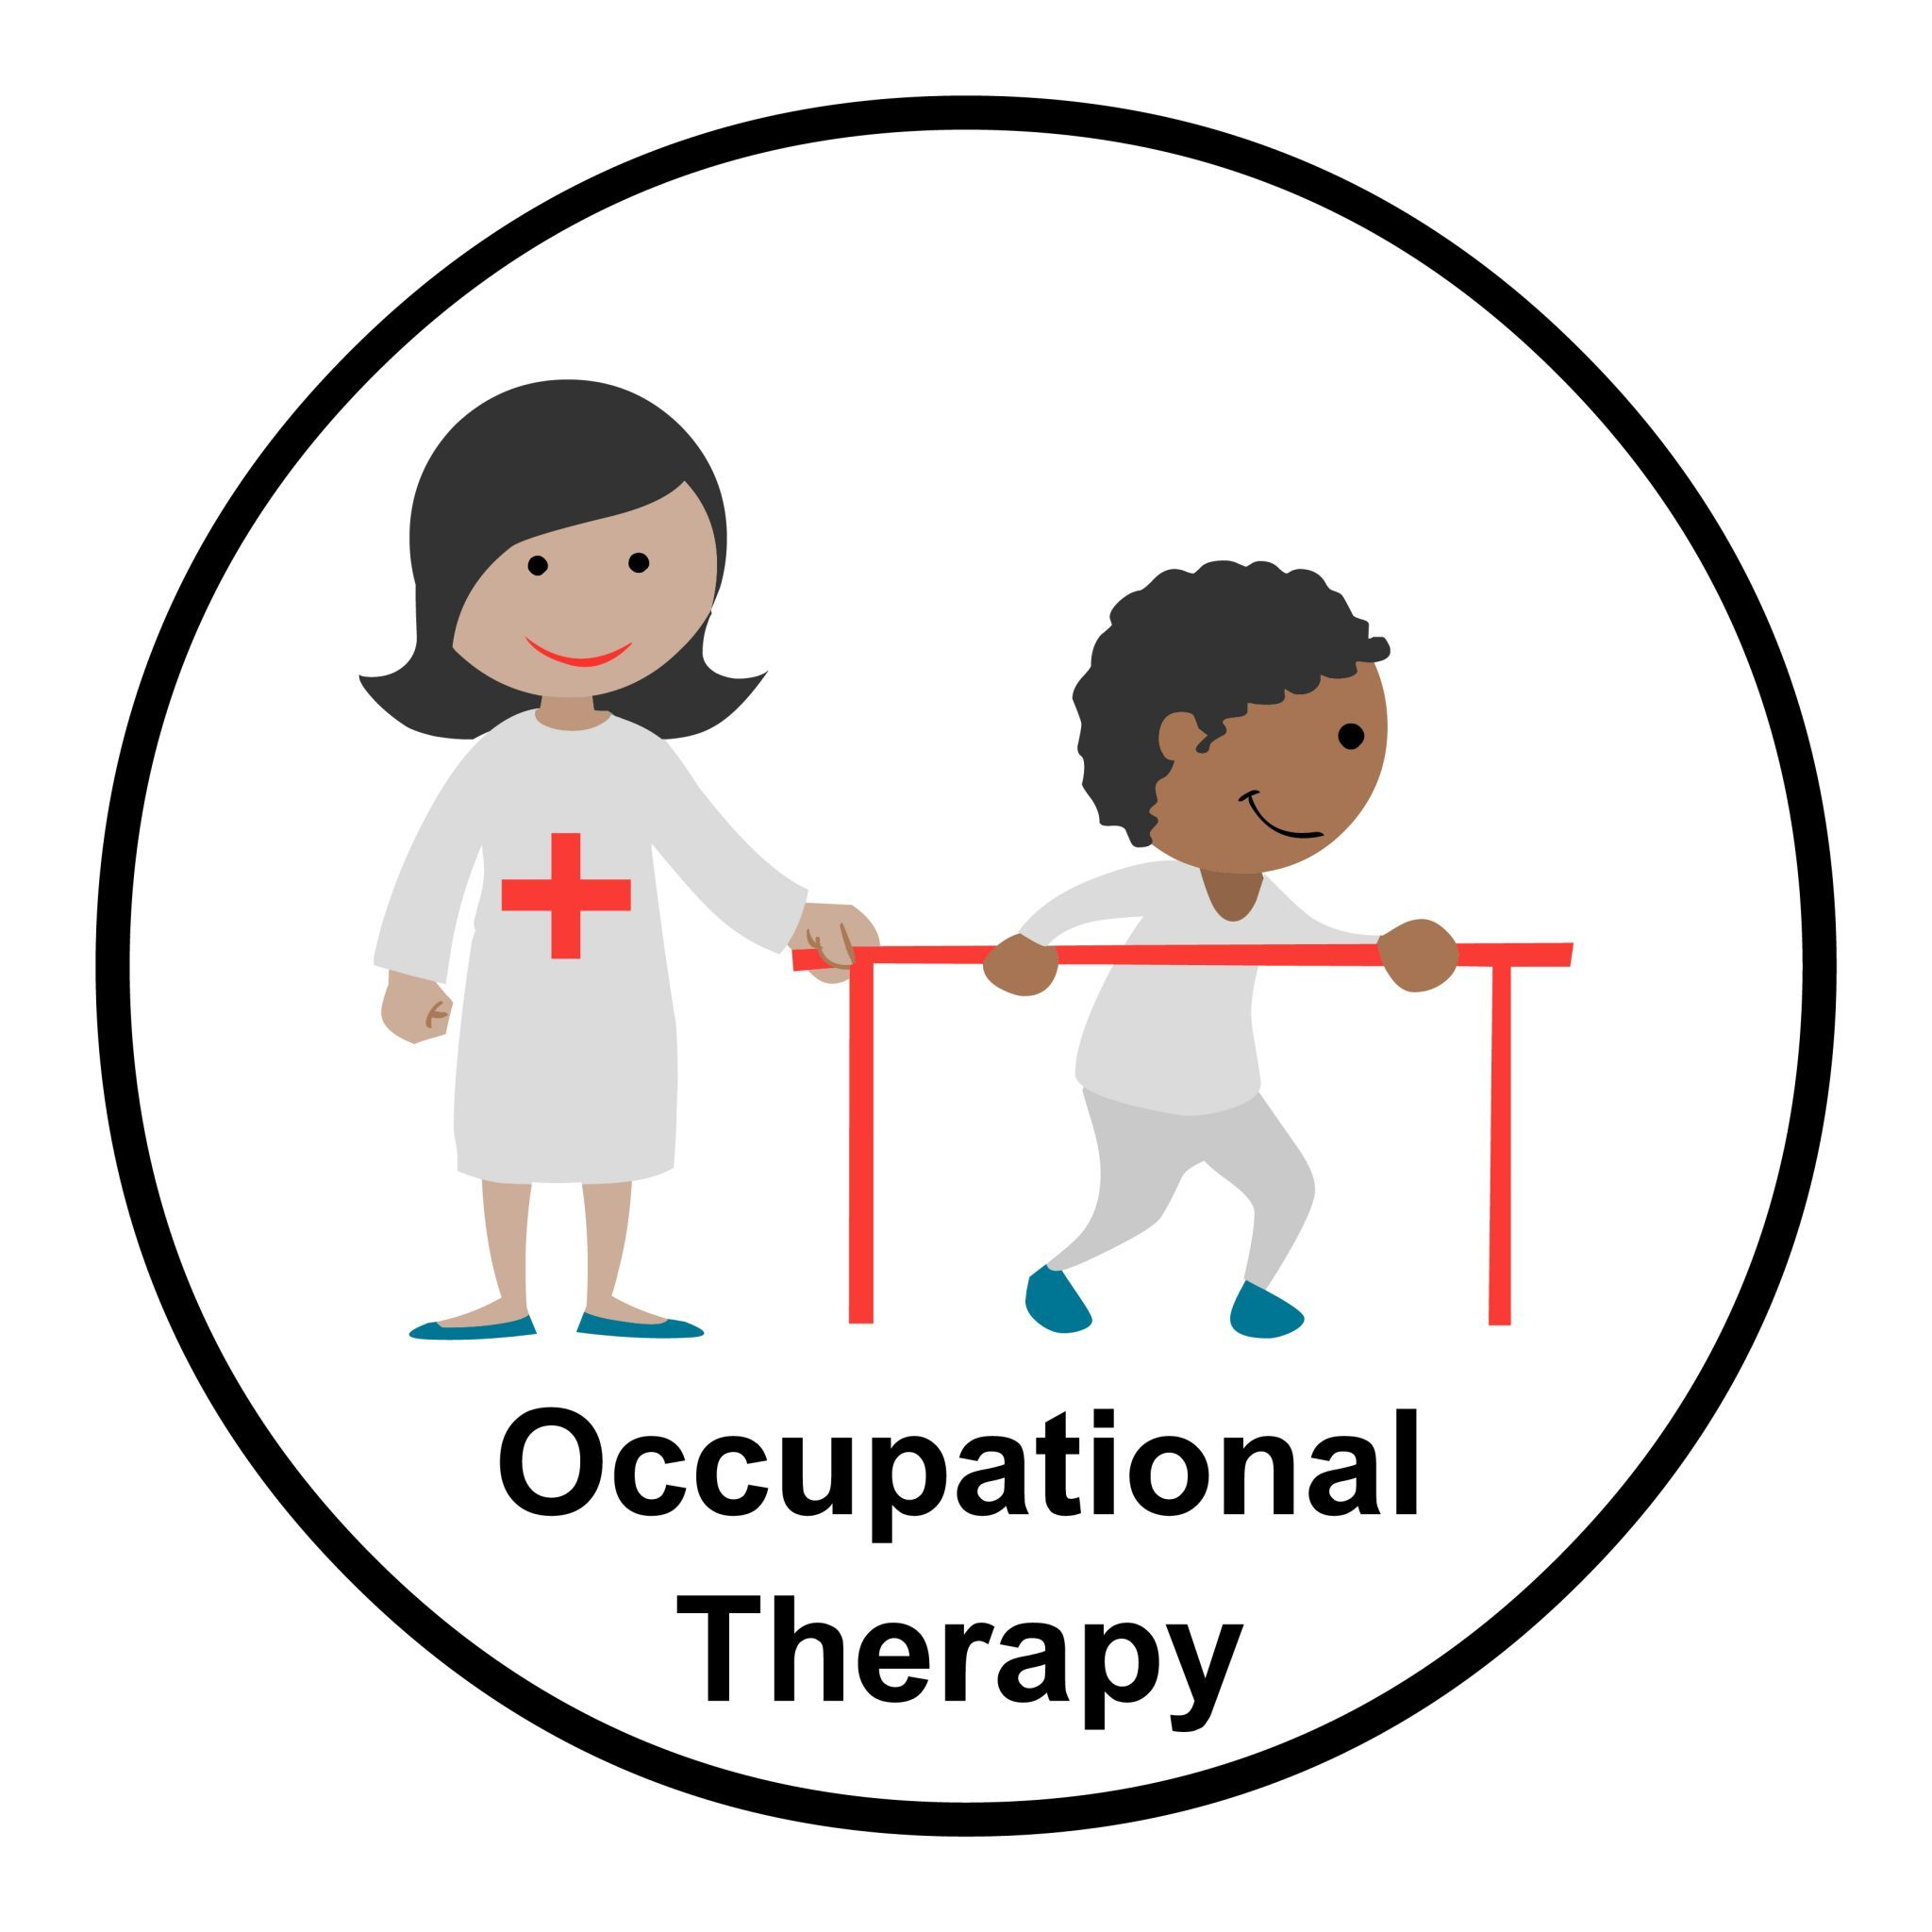 occupational therapy look hear australia allied health resources rh lookhearaustralia com au occupational therapy clip art free Occupational Therapy Hands